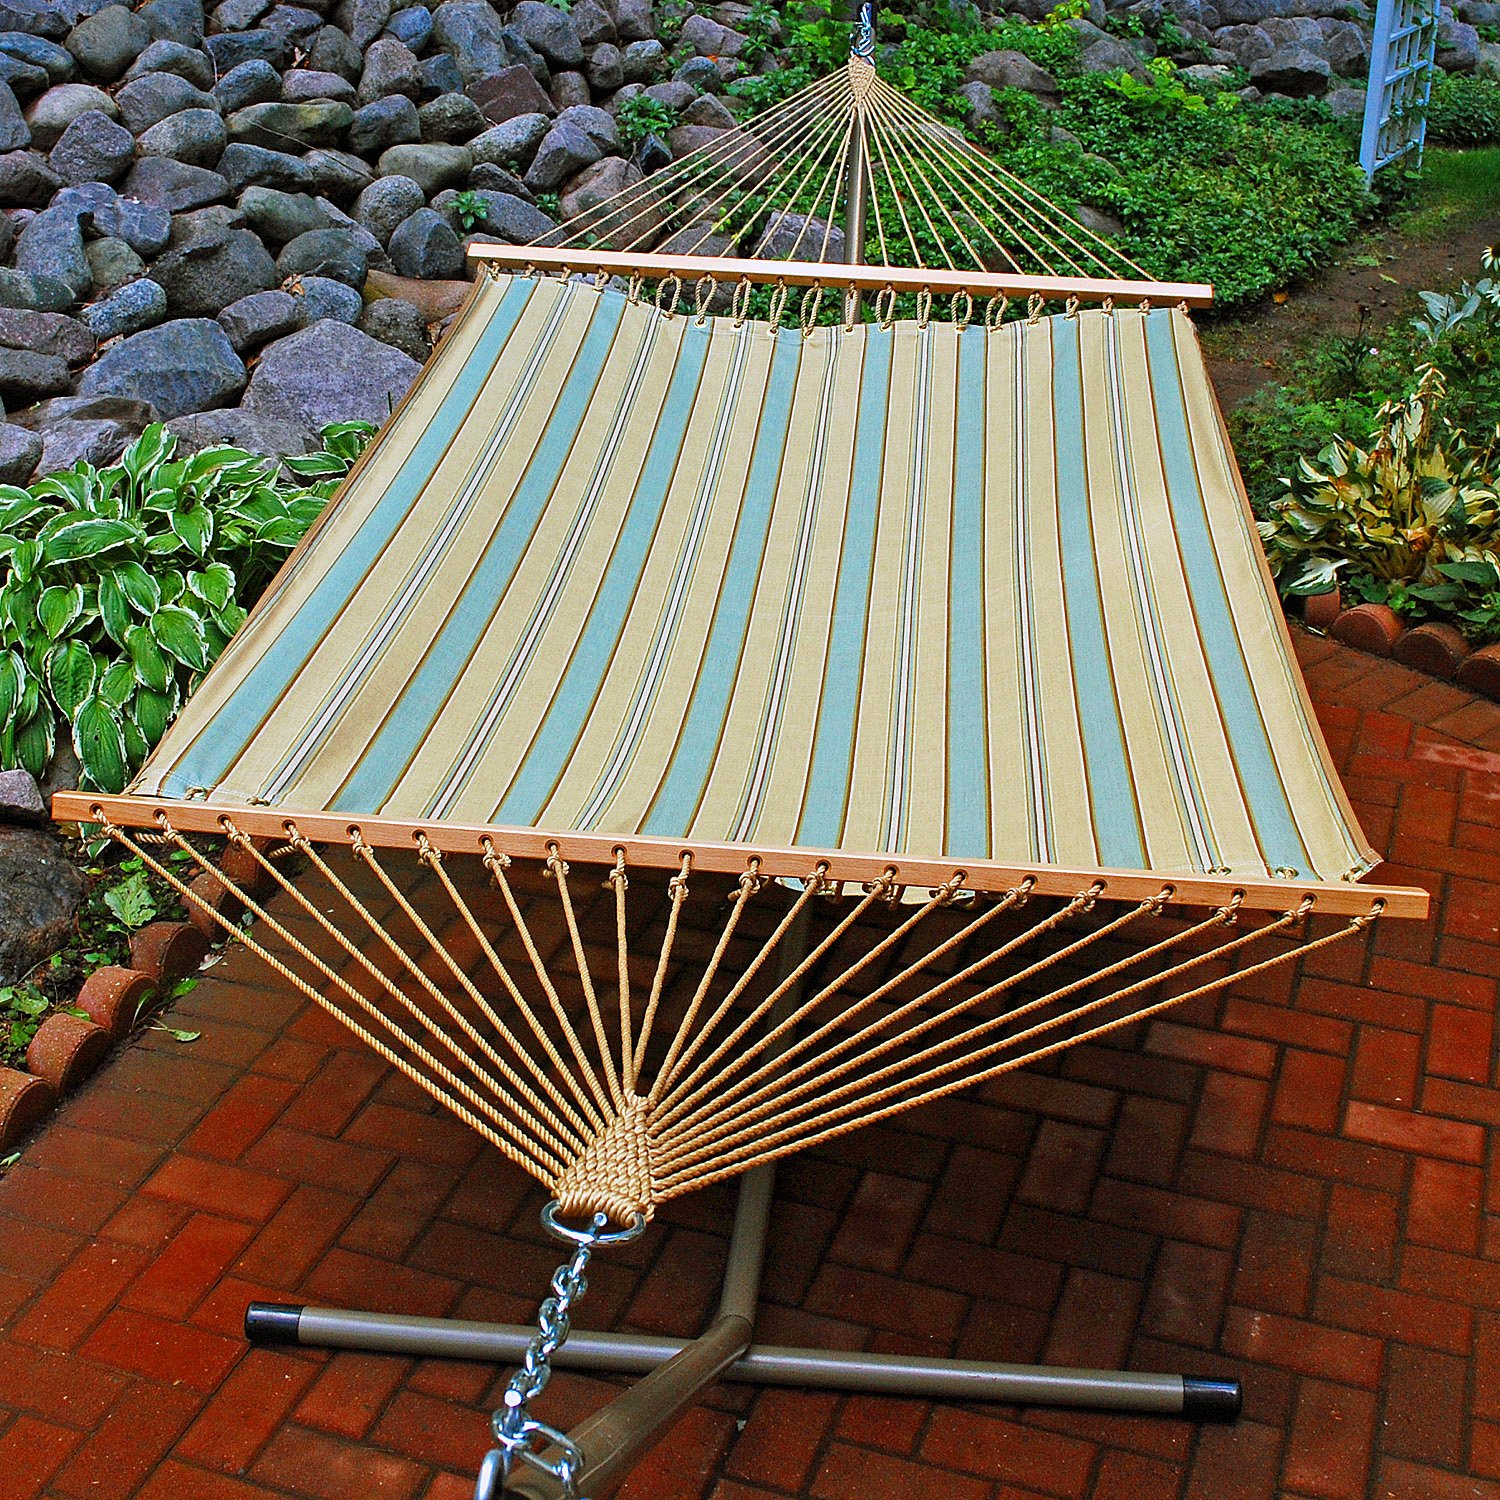 amazon     13 u0027 fabric hammock     hammock with stand   garden  u0026 outdoor amazon     13 u0027 fabric hammock     hammock with stand   garden      rh   amazon